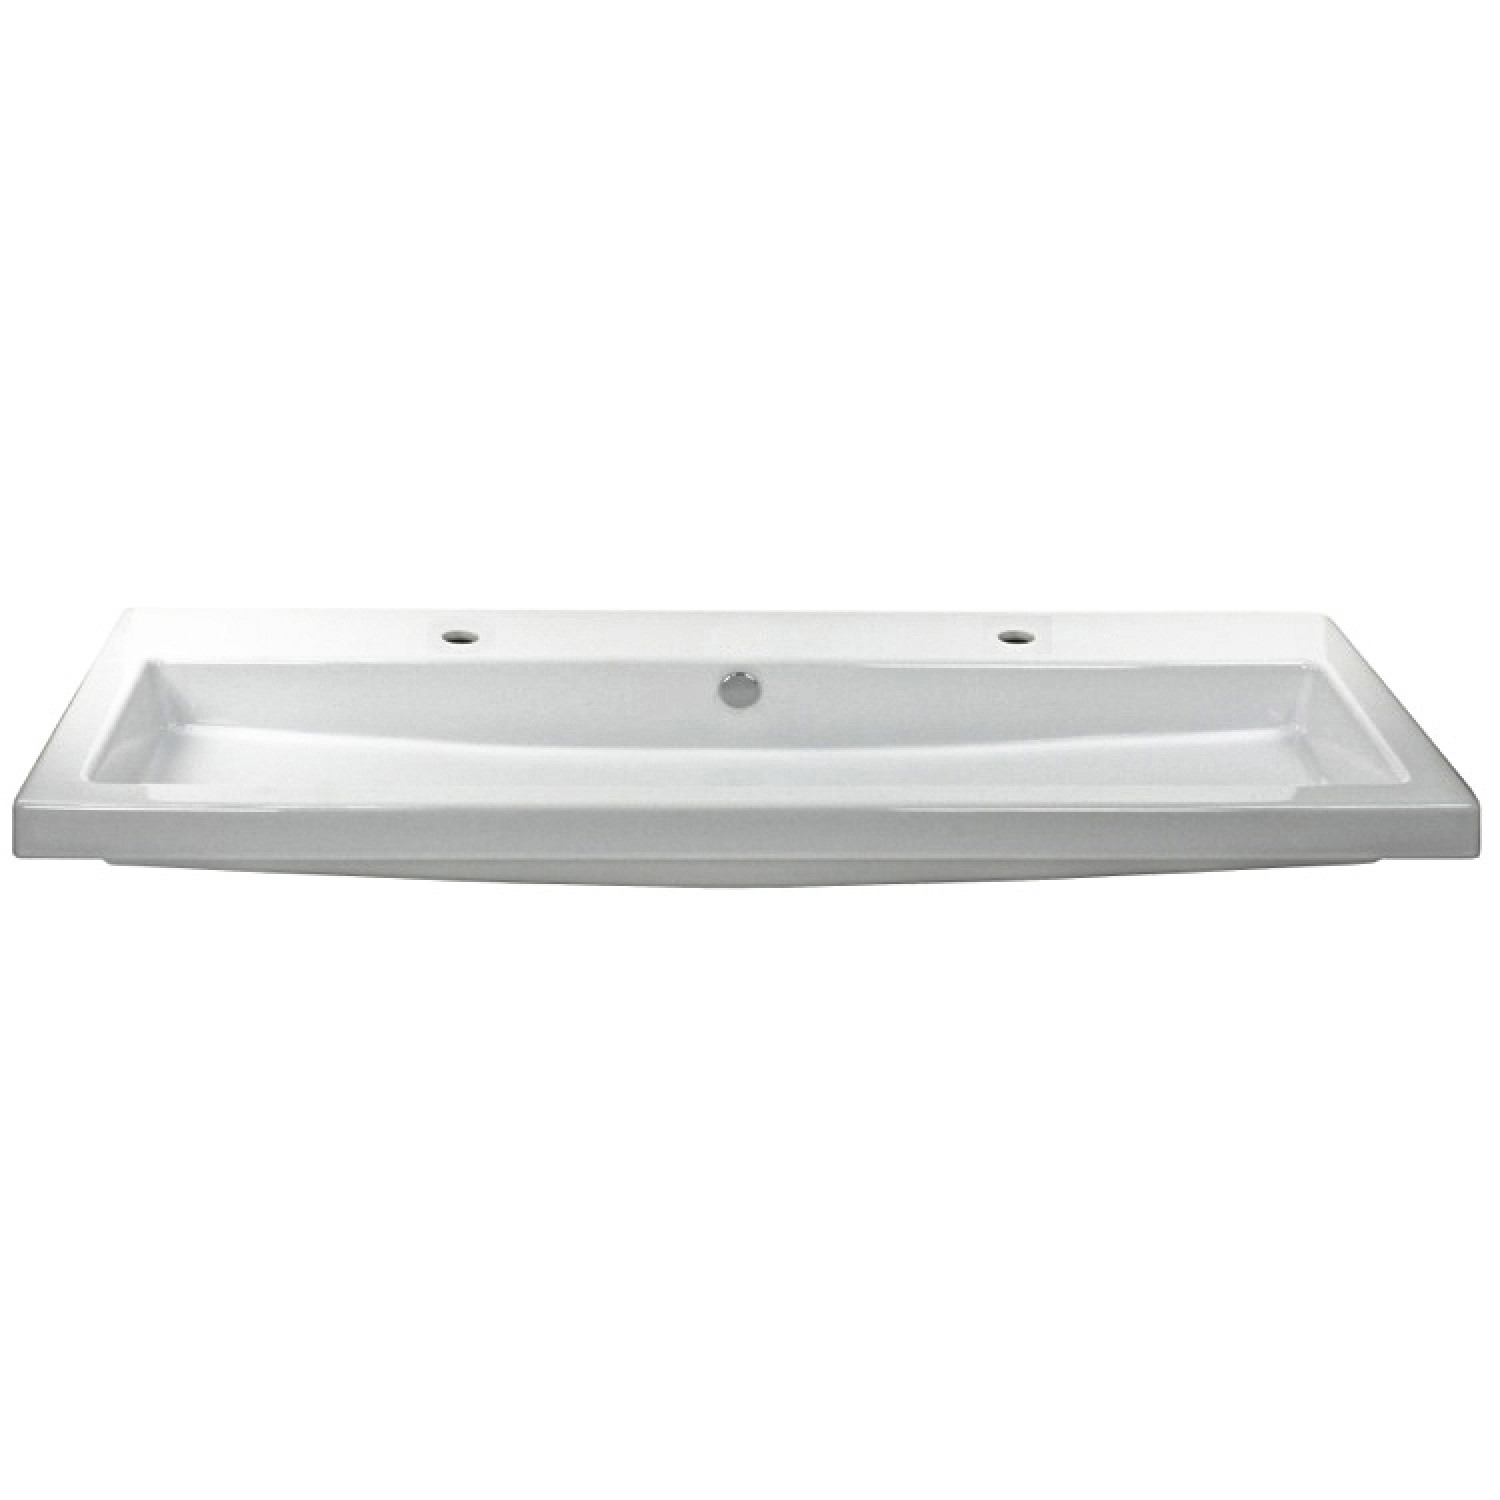 tecla cangas rectangular ceramic wall mounted trough style built in sink with two faucet holes modern contemporary double 4 ft white walmart com